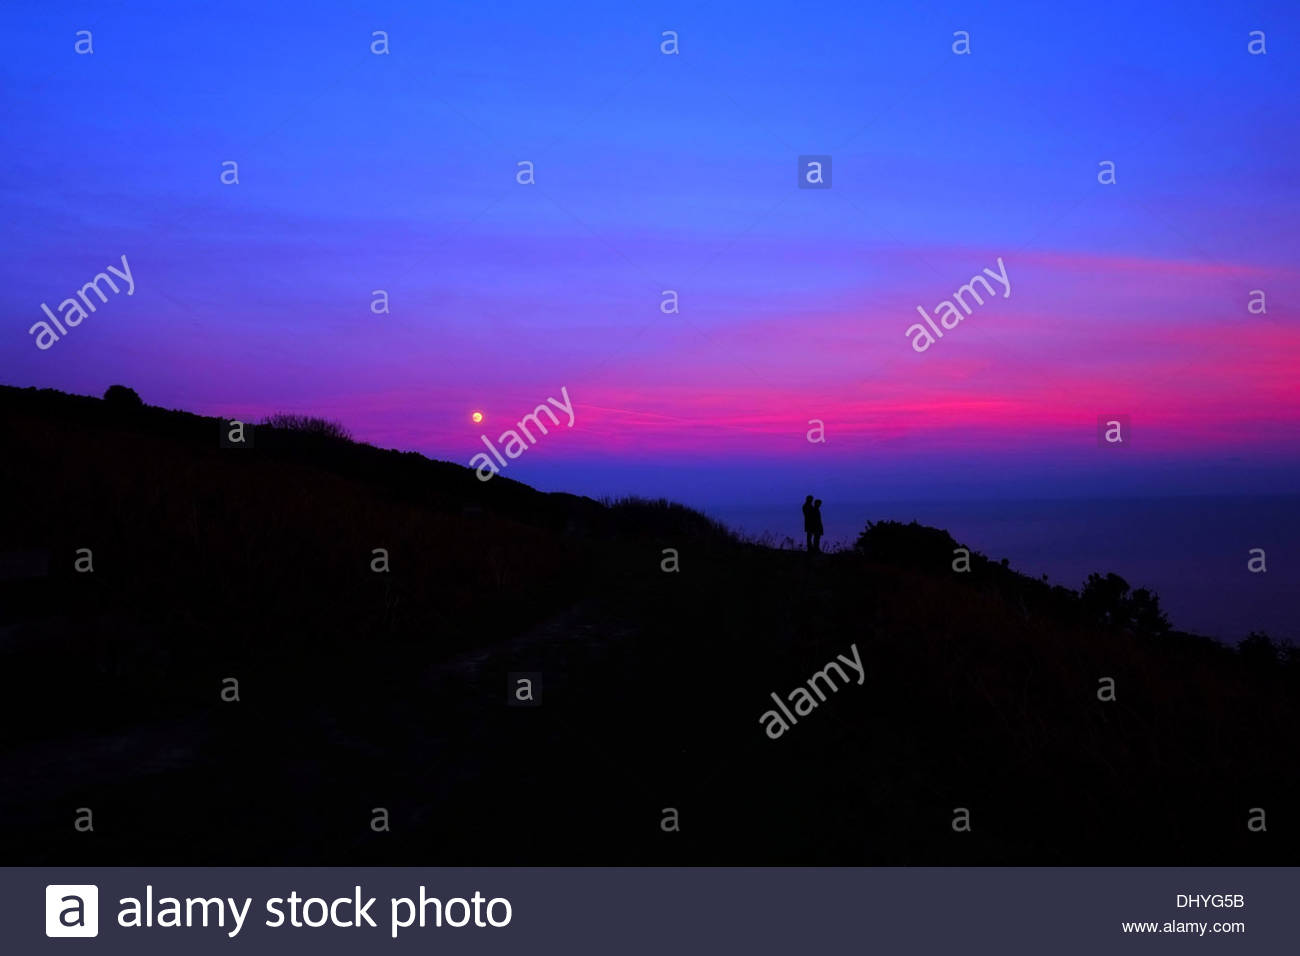 A full moon at sunset over Fairlight Country Park in East Sussex, UK - Stock Image